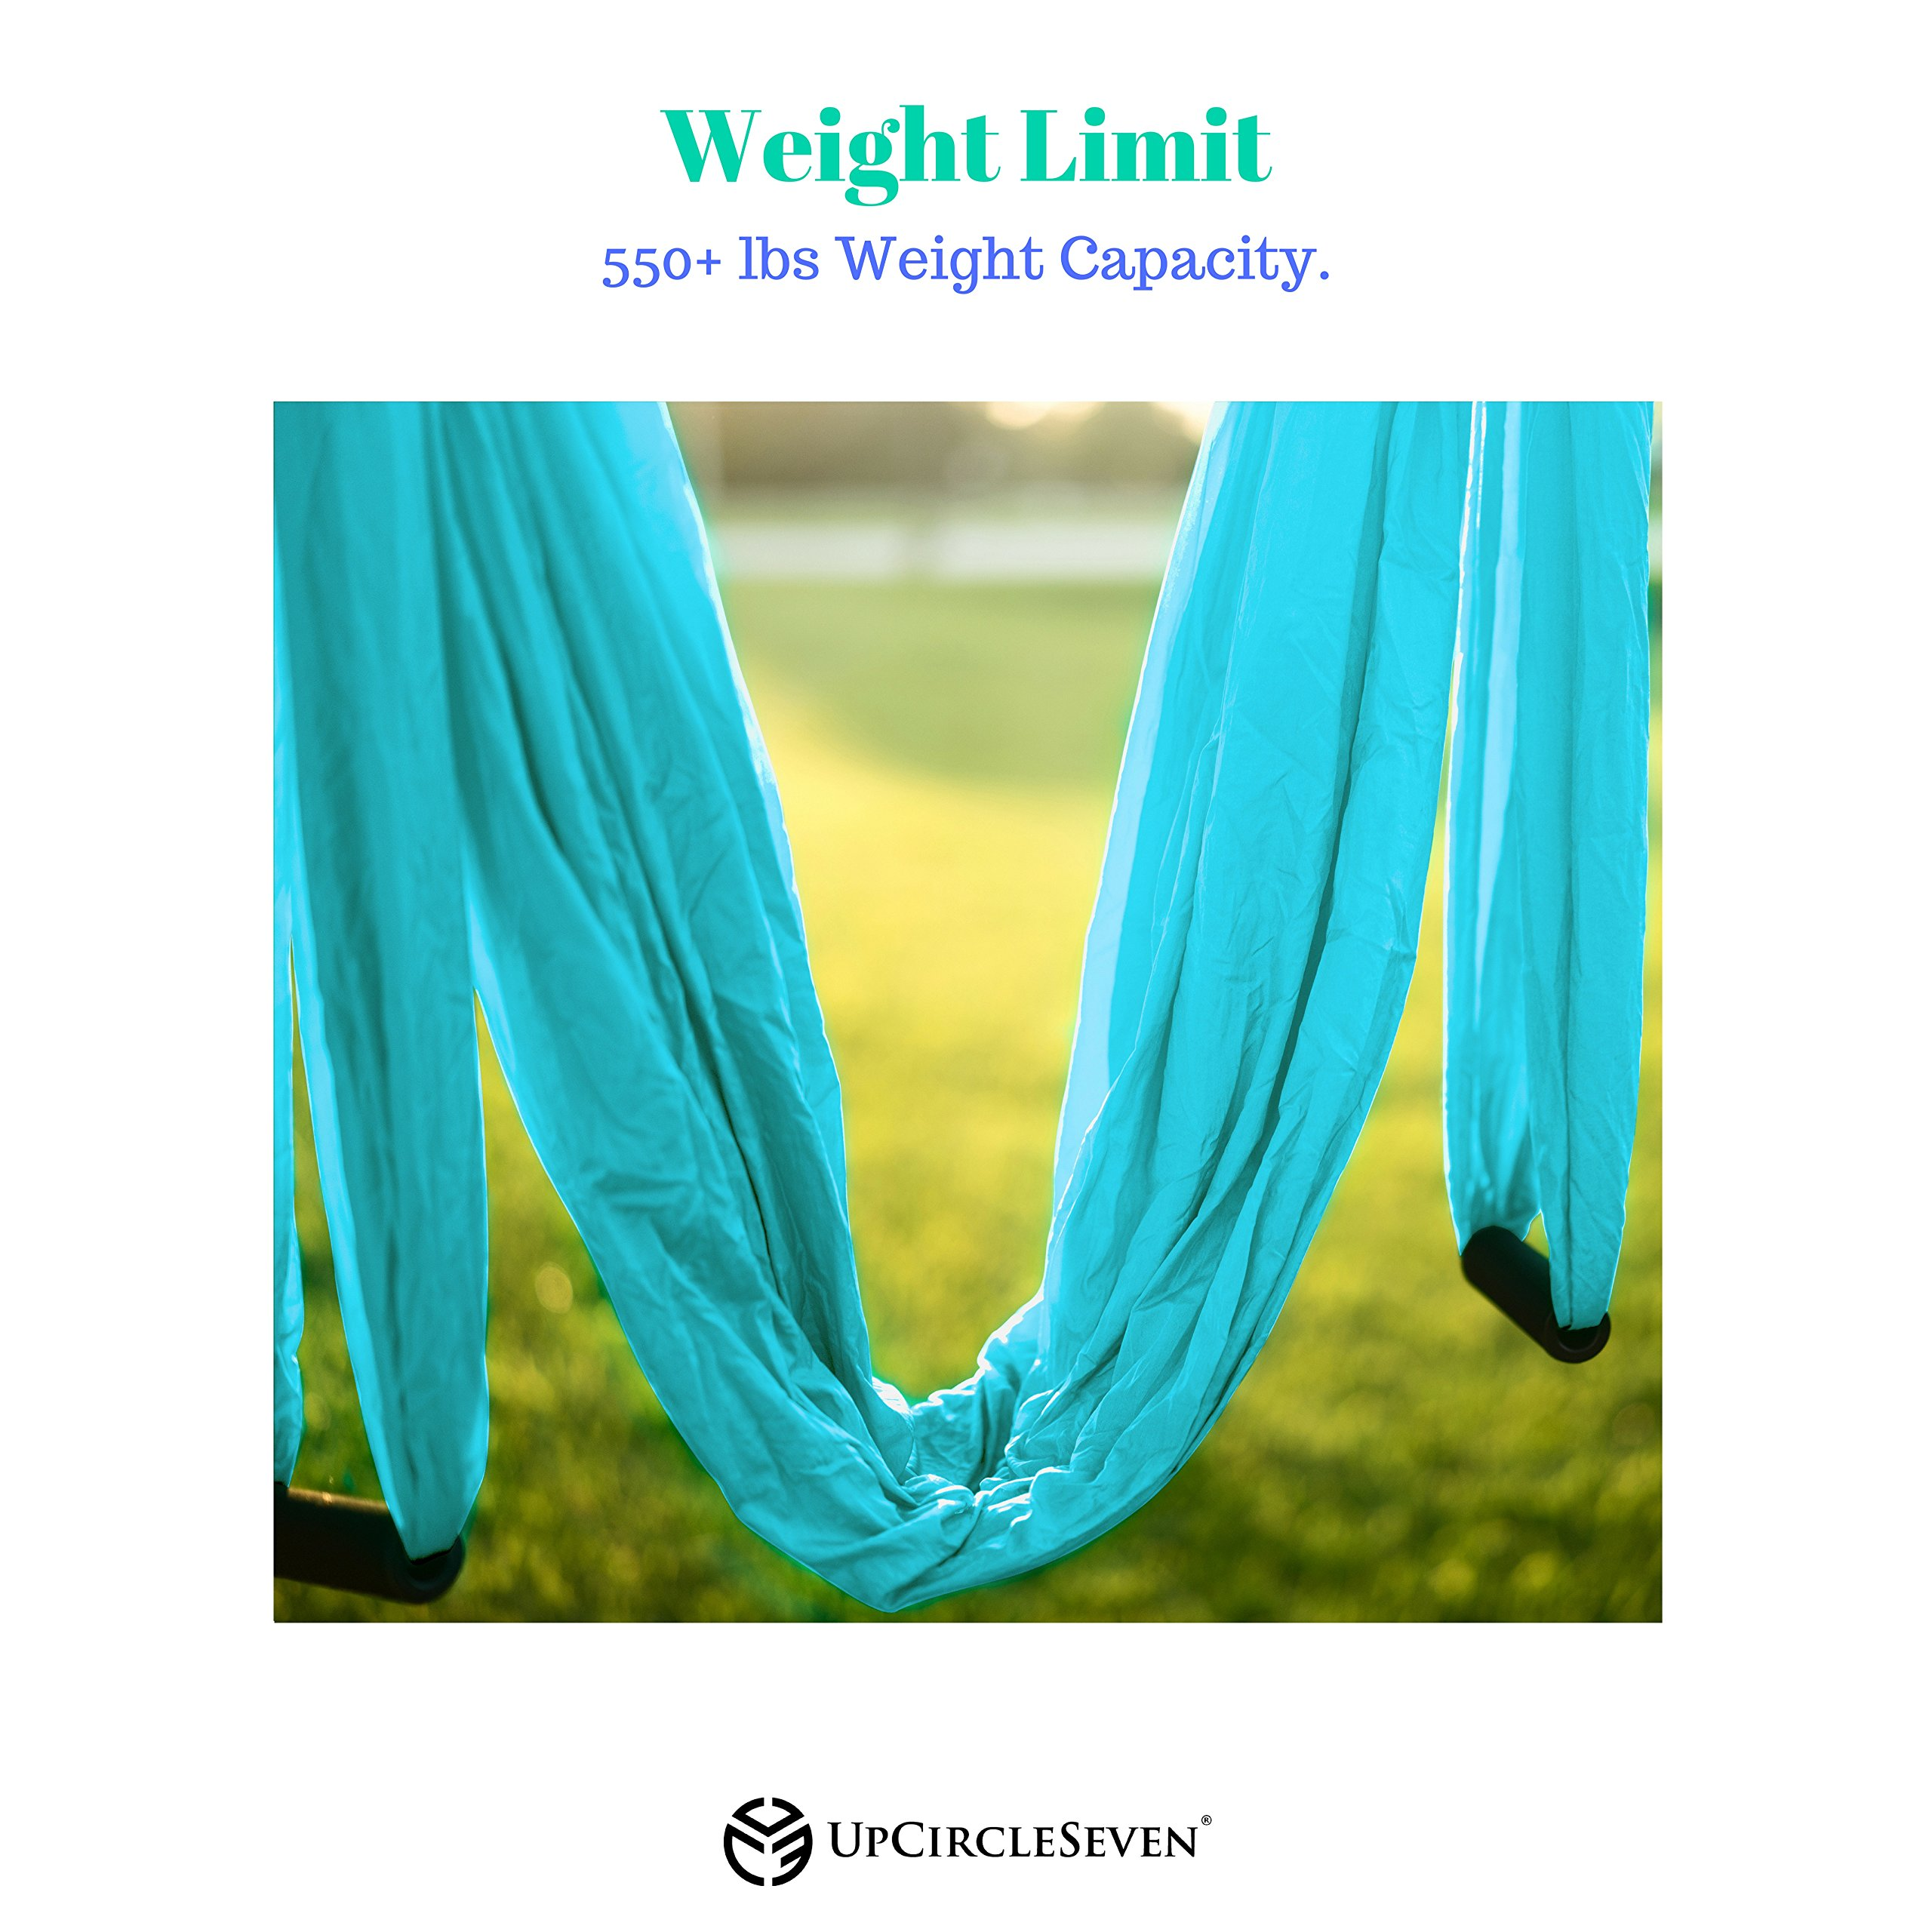 UpCircleSeven Aerial Yoga Swing - Ultra Strong Antigravity Yoga Hammock/Sling for Air Yoga Inversion Exercises - 2 Extensions Straps Included (Blue) by UpCircleSeven (Image #5)